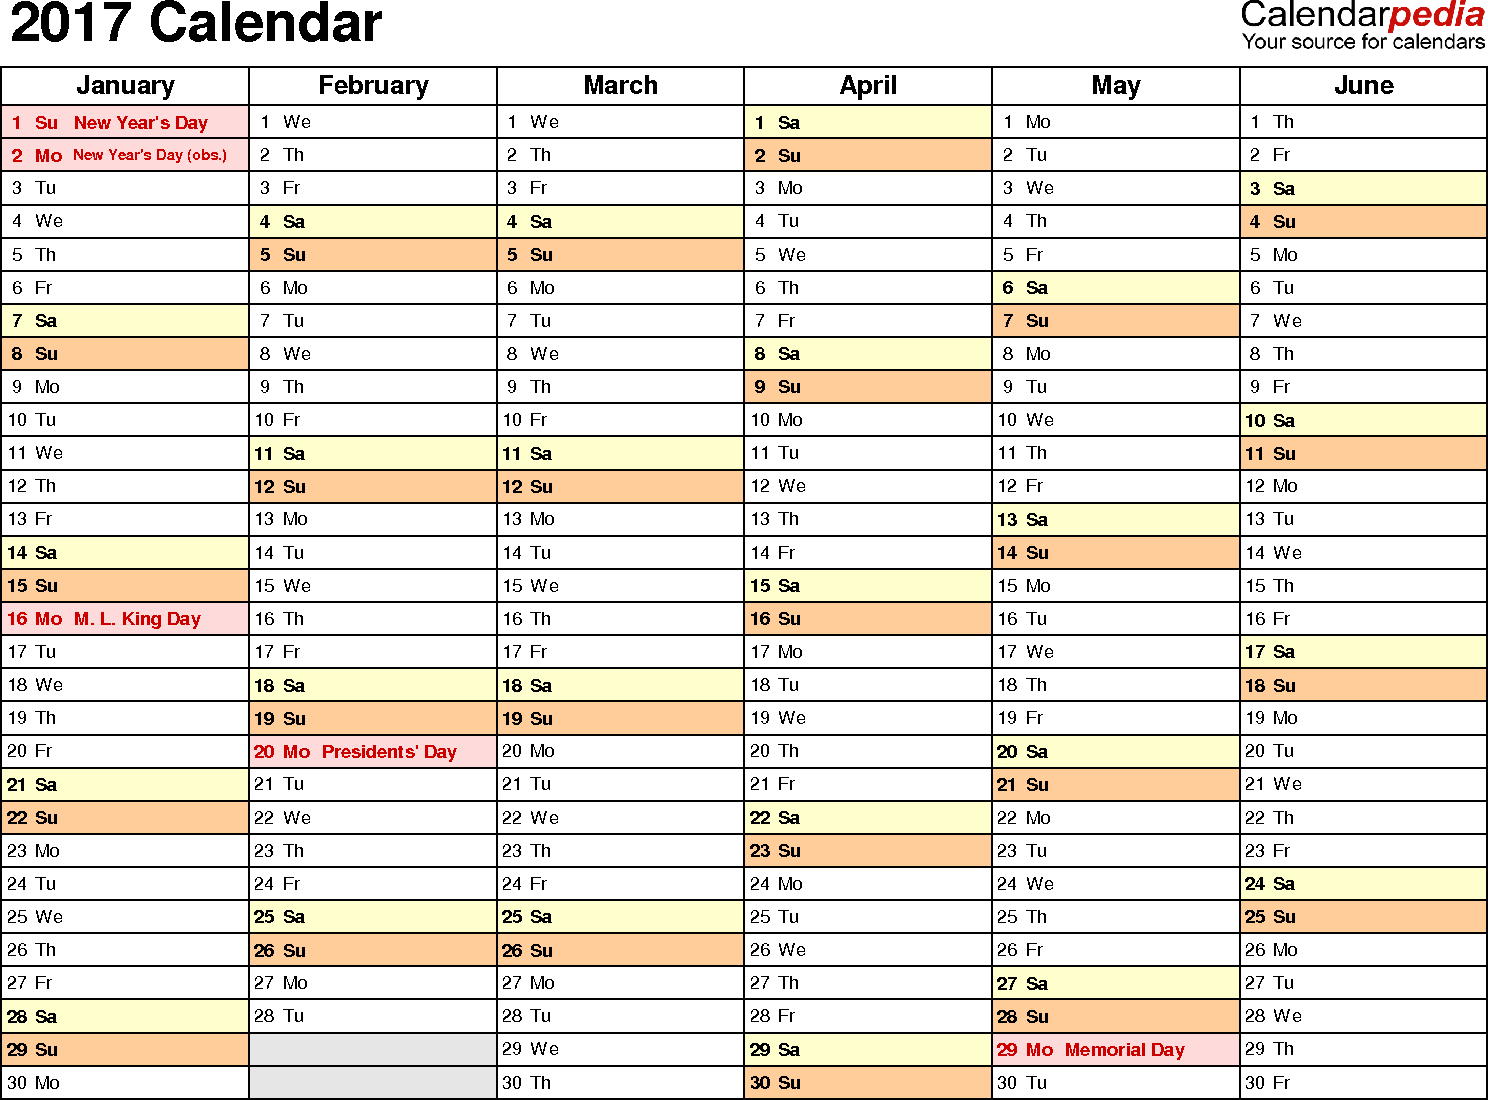 Ediblewildsus  Pretty  Calendar  Download  Free Printable Excel Templates Xls With Entrancing Template   Calendar For Excel Months Horizontally  Pages Landscape Orientation With Amazing What Does The Symbol Mean In Excel Also Weighted Moving Average Formula Excel In Addition Excel Eliminate Duplicate Rows And How To Use The Lookup Function In Excel As Well As Unlock Macro Password In Excel Additionally Microsoft Excel Practice From Calendarpediacom With Ediblewildsus  Entrancing  Calendar  Download  Free Printable Excel Templates Xls With Amazing Template   Calendar For Excel Months Horizontally  Pages Landscape Orientation And Pretty What Does The Symbol Mean In Excel Also Weighted Moving Average Formula Excel In Addition Excel Eliminate Duplicate Rows From Calendarpediacom